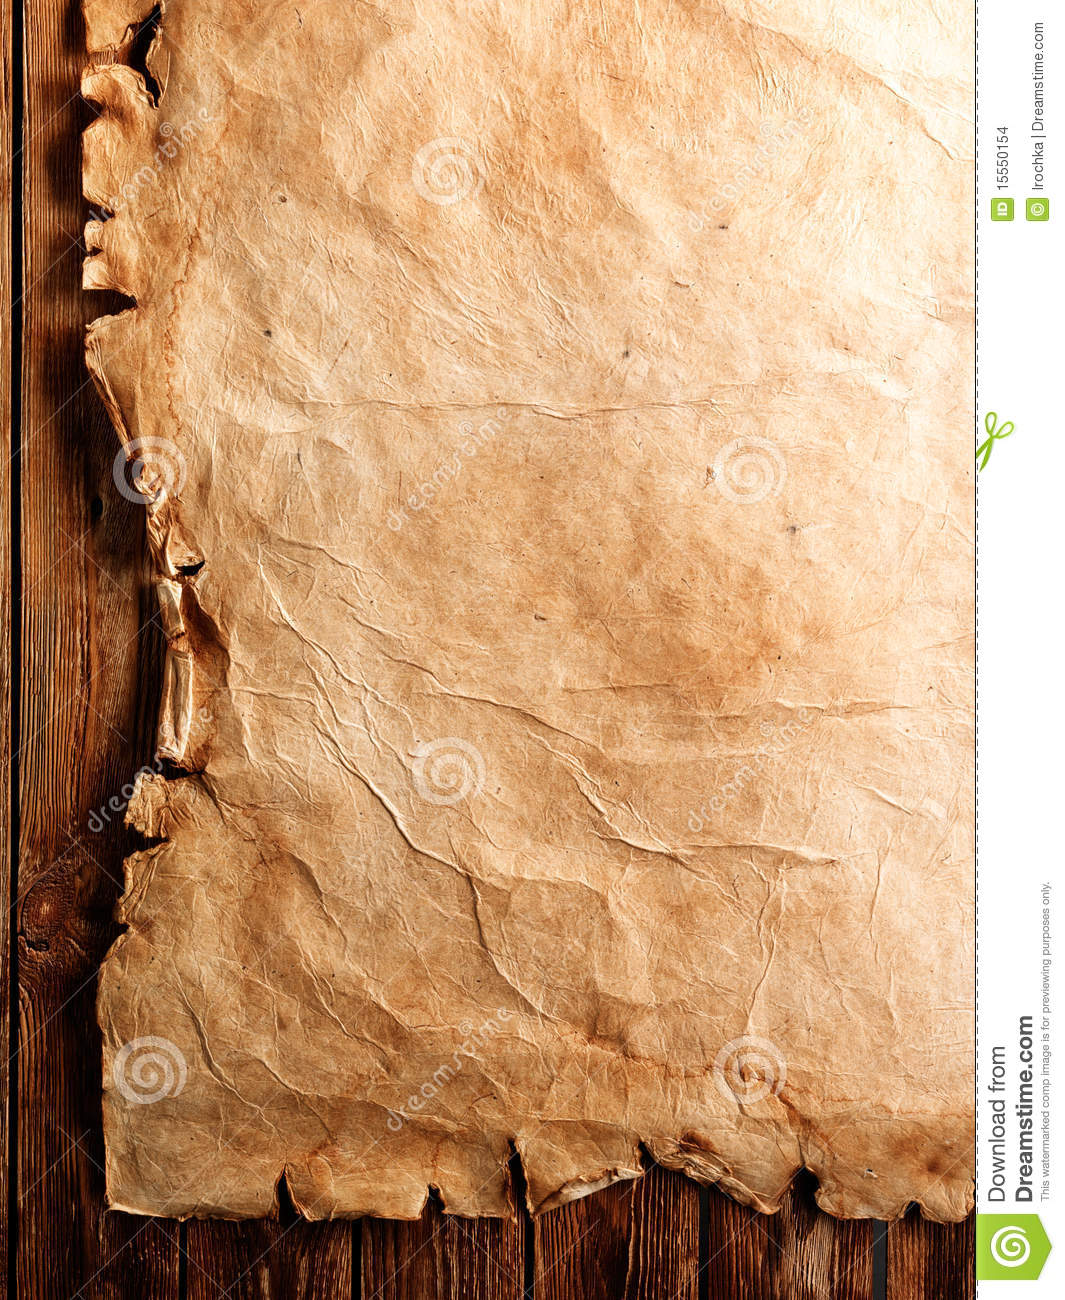 Piece Of Tattered Old Parchment Paper Laying On A Wooden Surface Antique